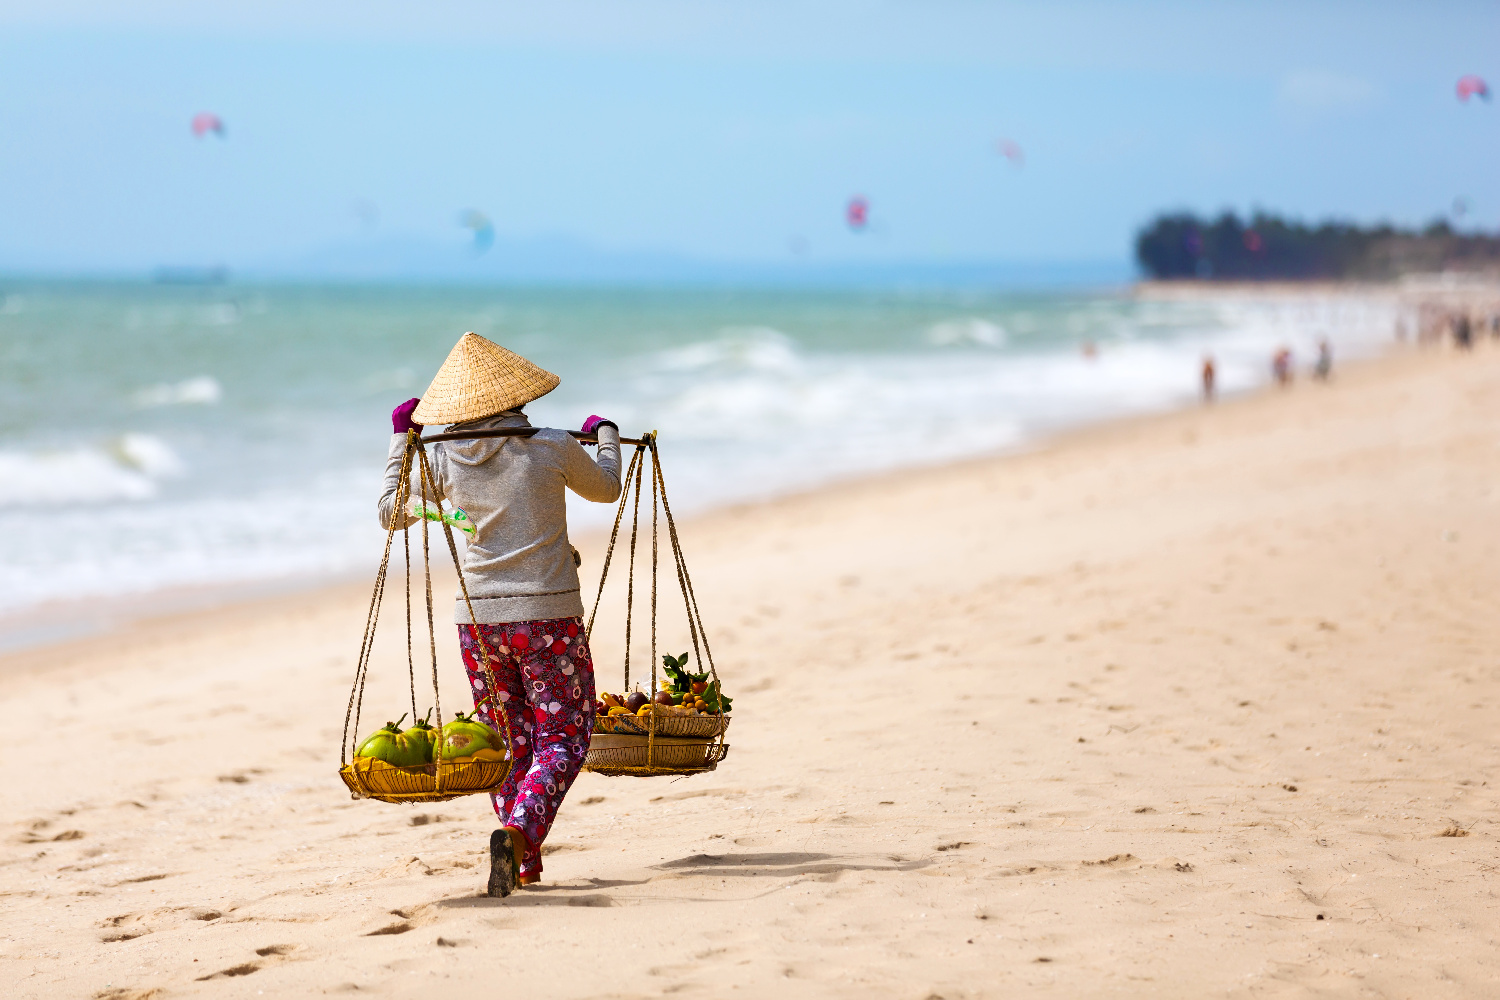 Vietnamese woman selling Fruits at Mui Ne beach. Vietnam